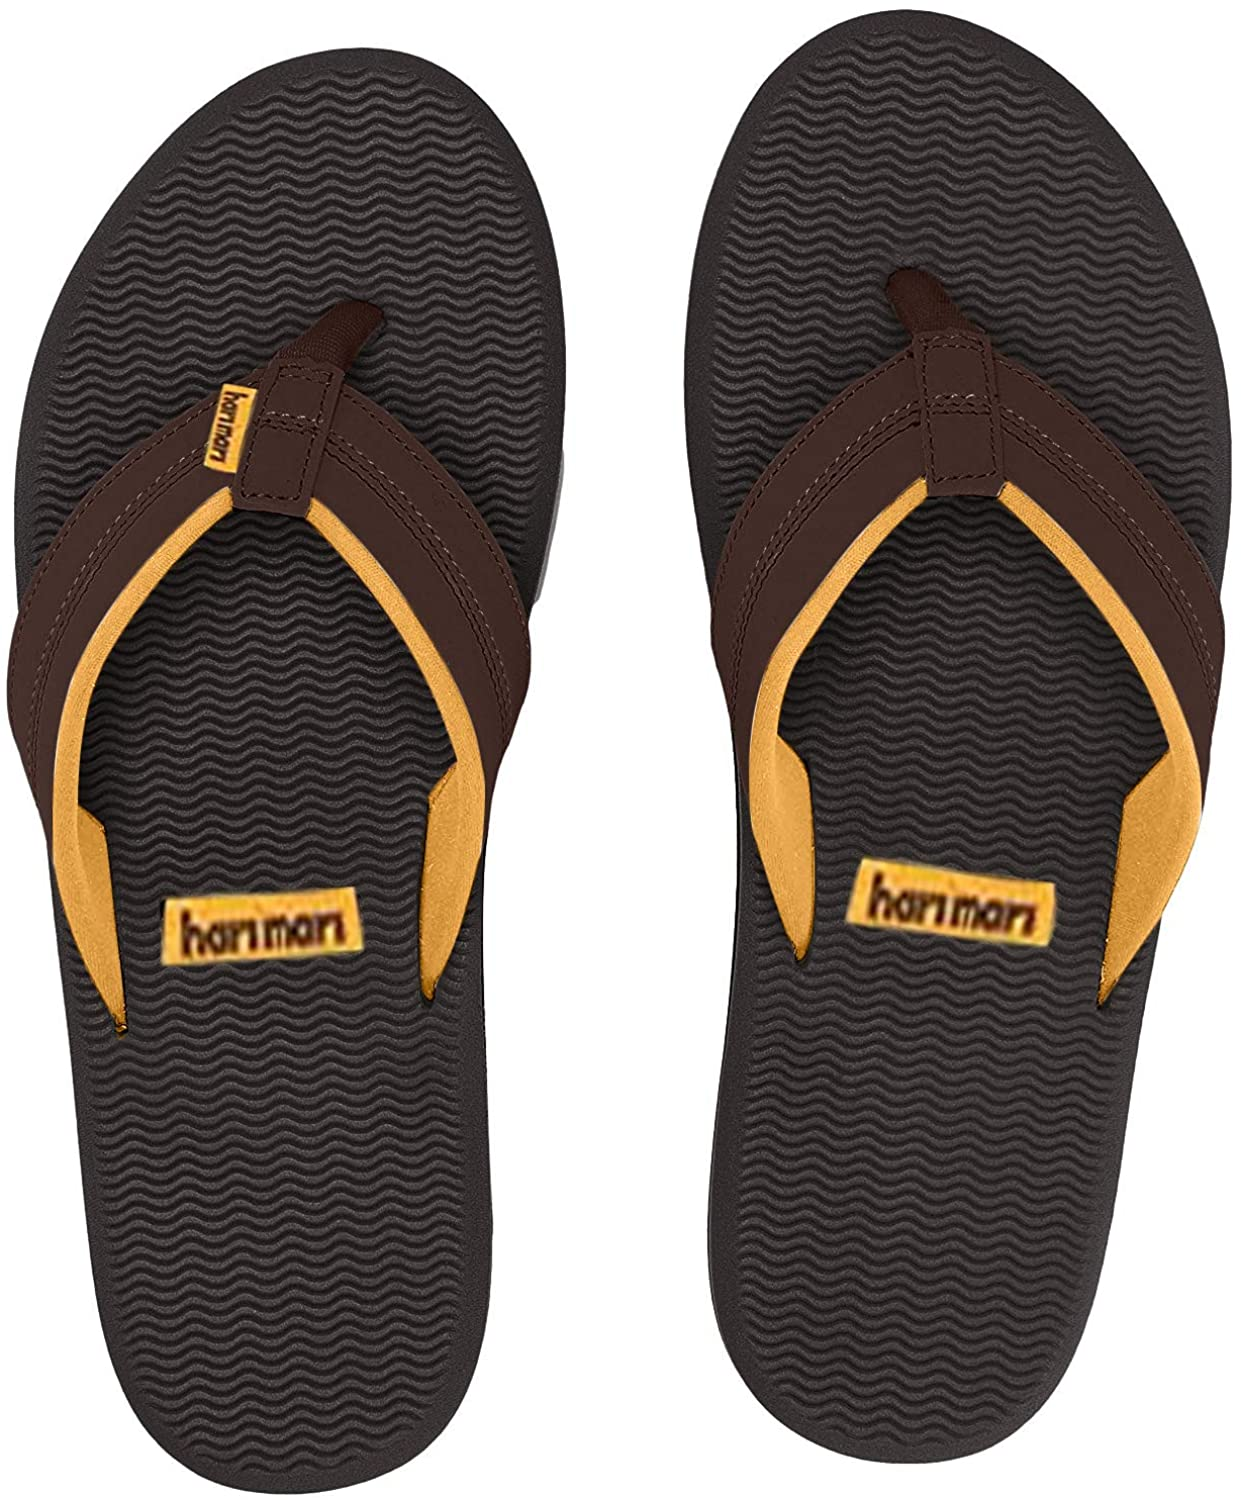 Hari Mari Brazos - Men's Premium Rubber Flip Flops with Nubuck Leather Straps